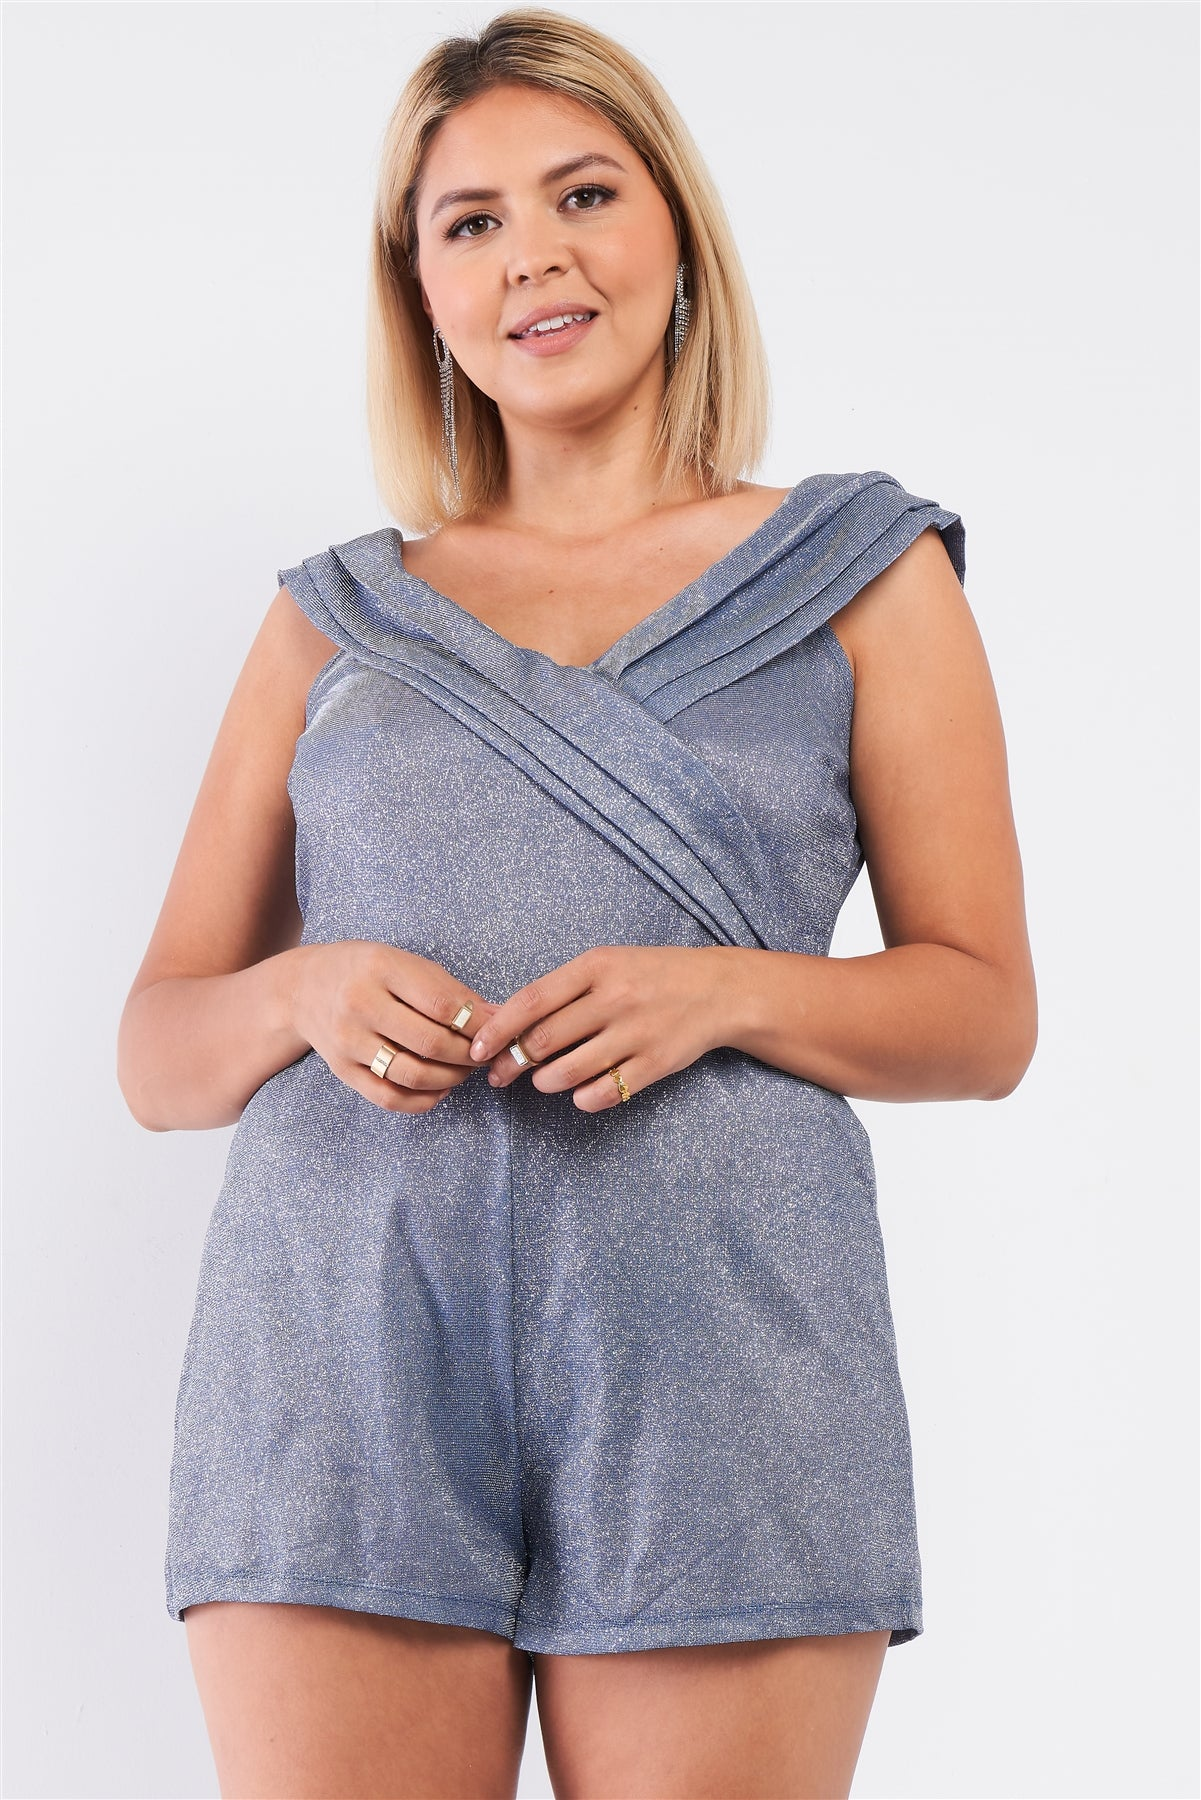 Plus Glimmering Ice Blue Sleeveless Bateau Neck Pleated Wrap Detail Fitted Romper